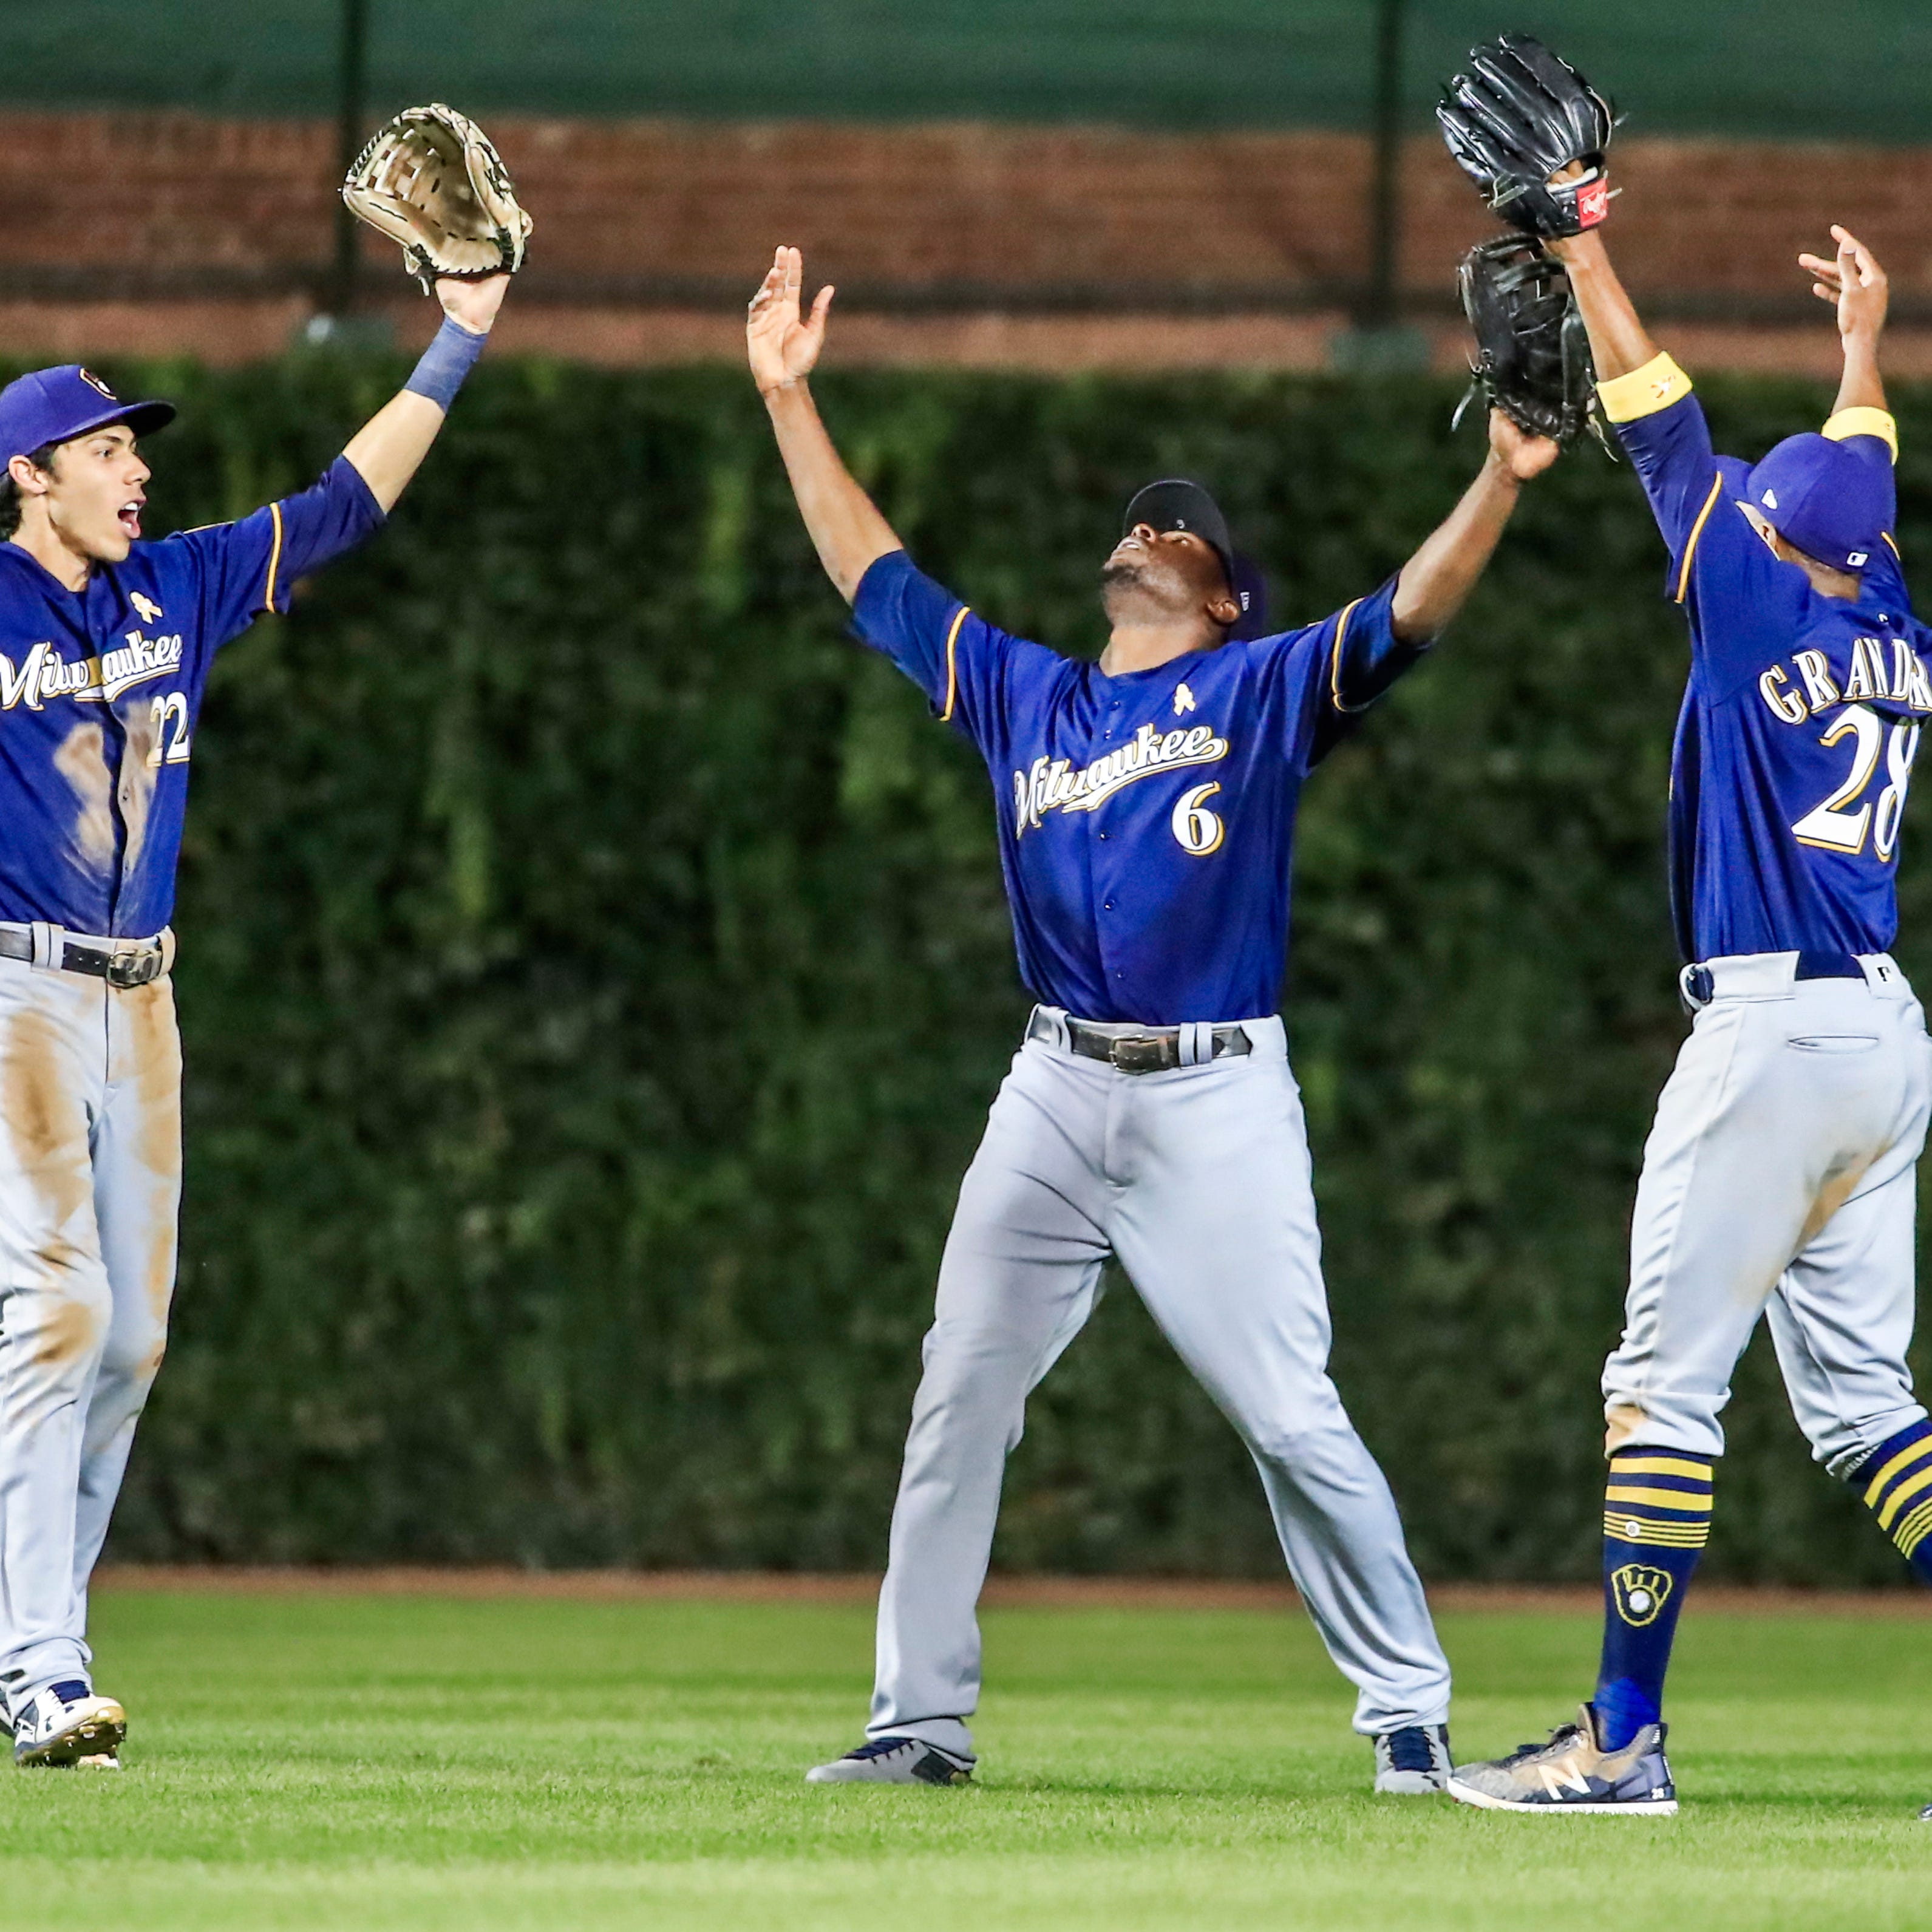 In biggest game in a long time, Brewers showed they are ready to challenge Cubs for division